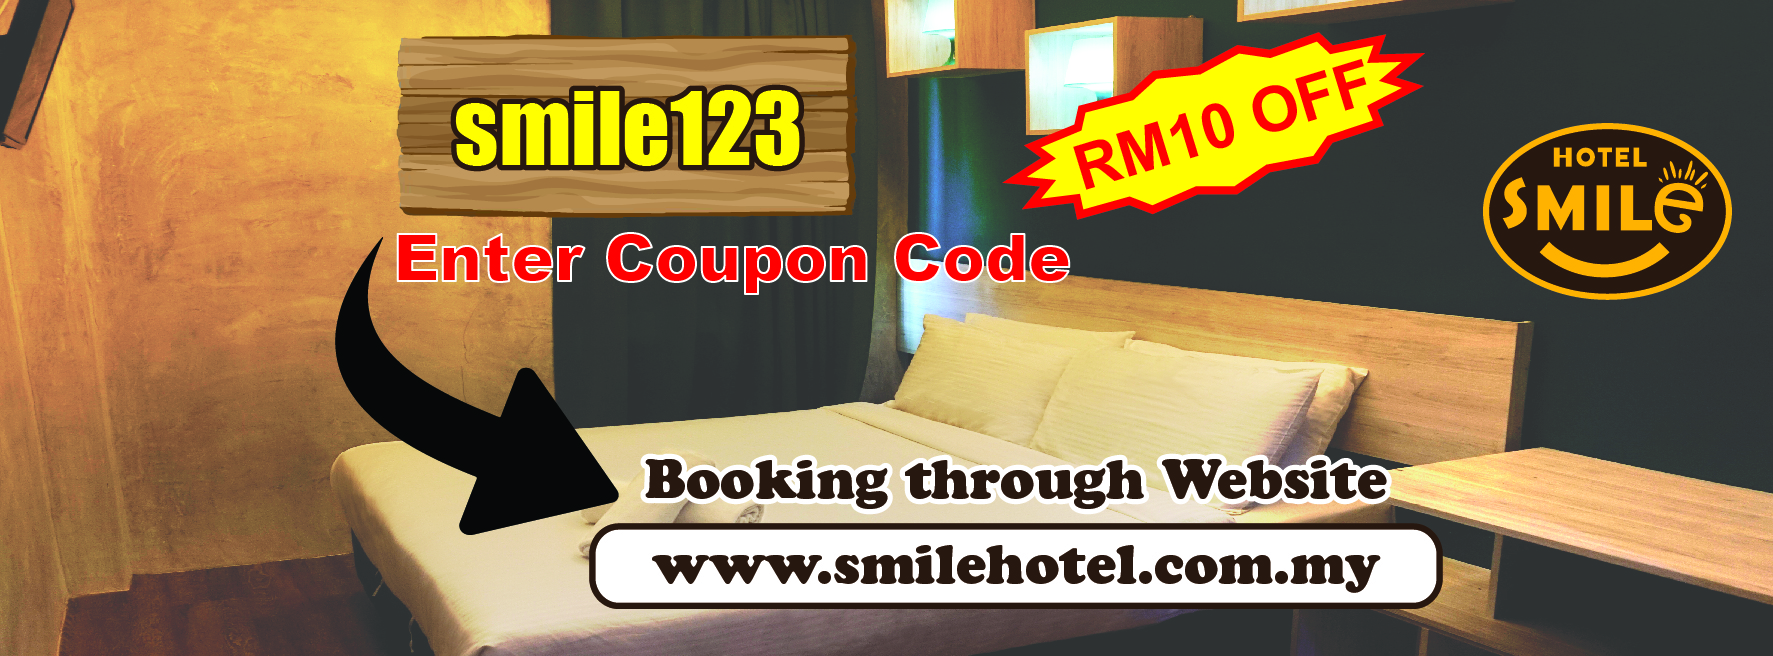 Promote-Website-Code-Smile-851x315-01